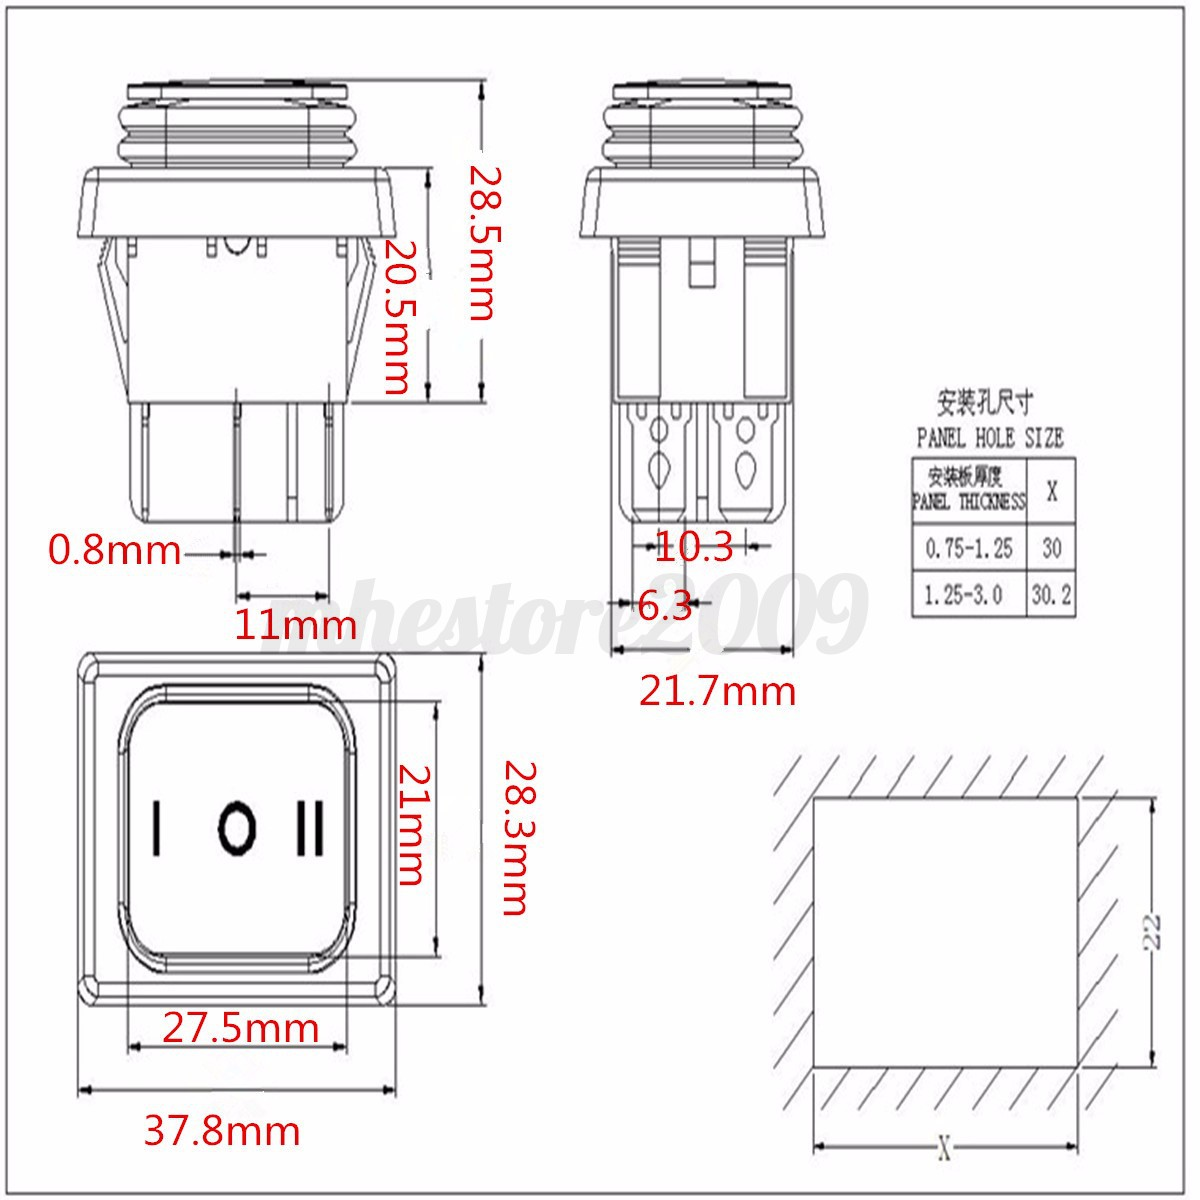 6 pin square trailer wiring diagram architecture bubble template excel 5pcs 12v auto dush 6pin dpdt locking on off